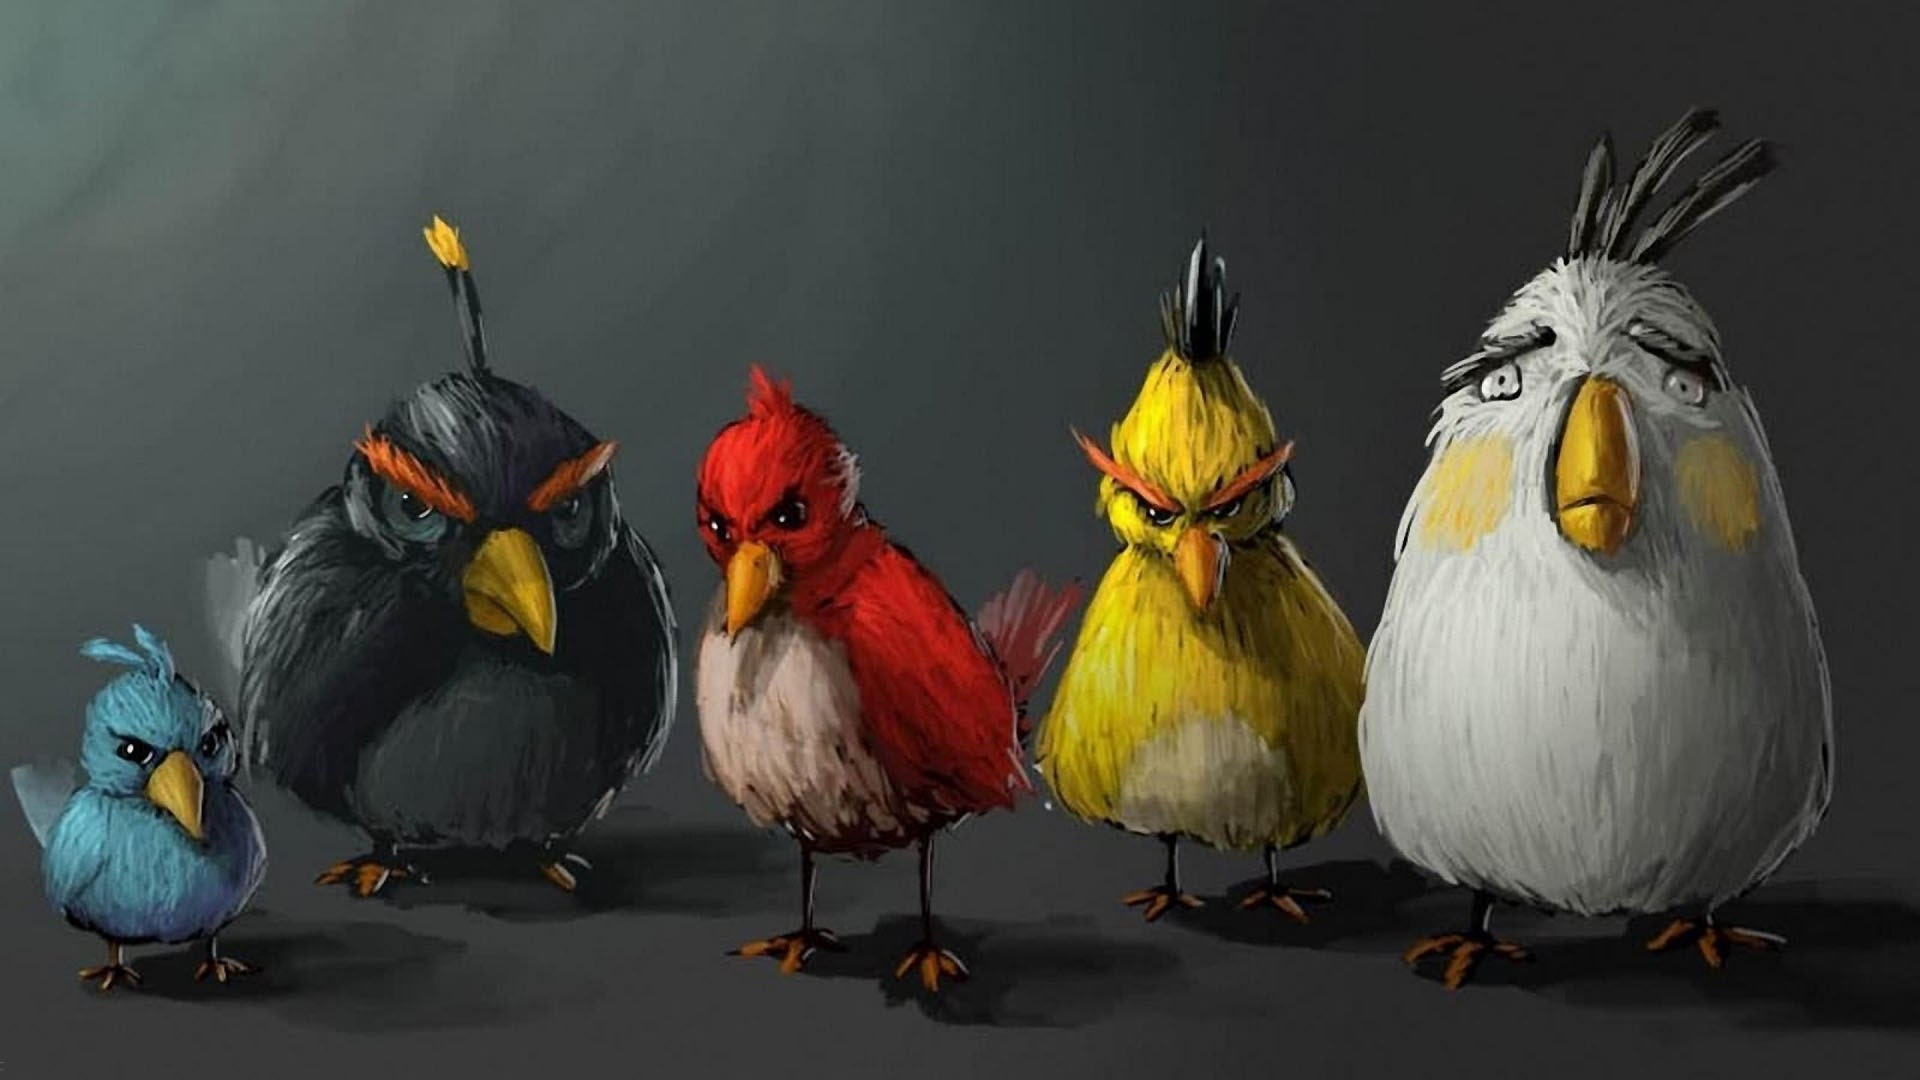 1920x1080 Epic Angry Birds Timelapse Drawings (Cool Music)